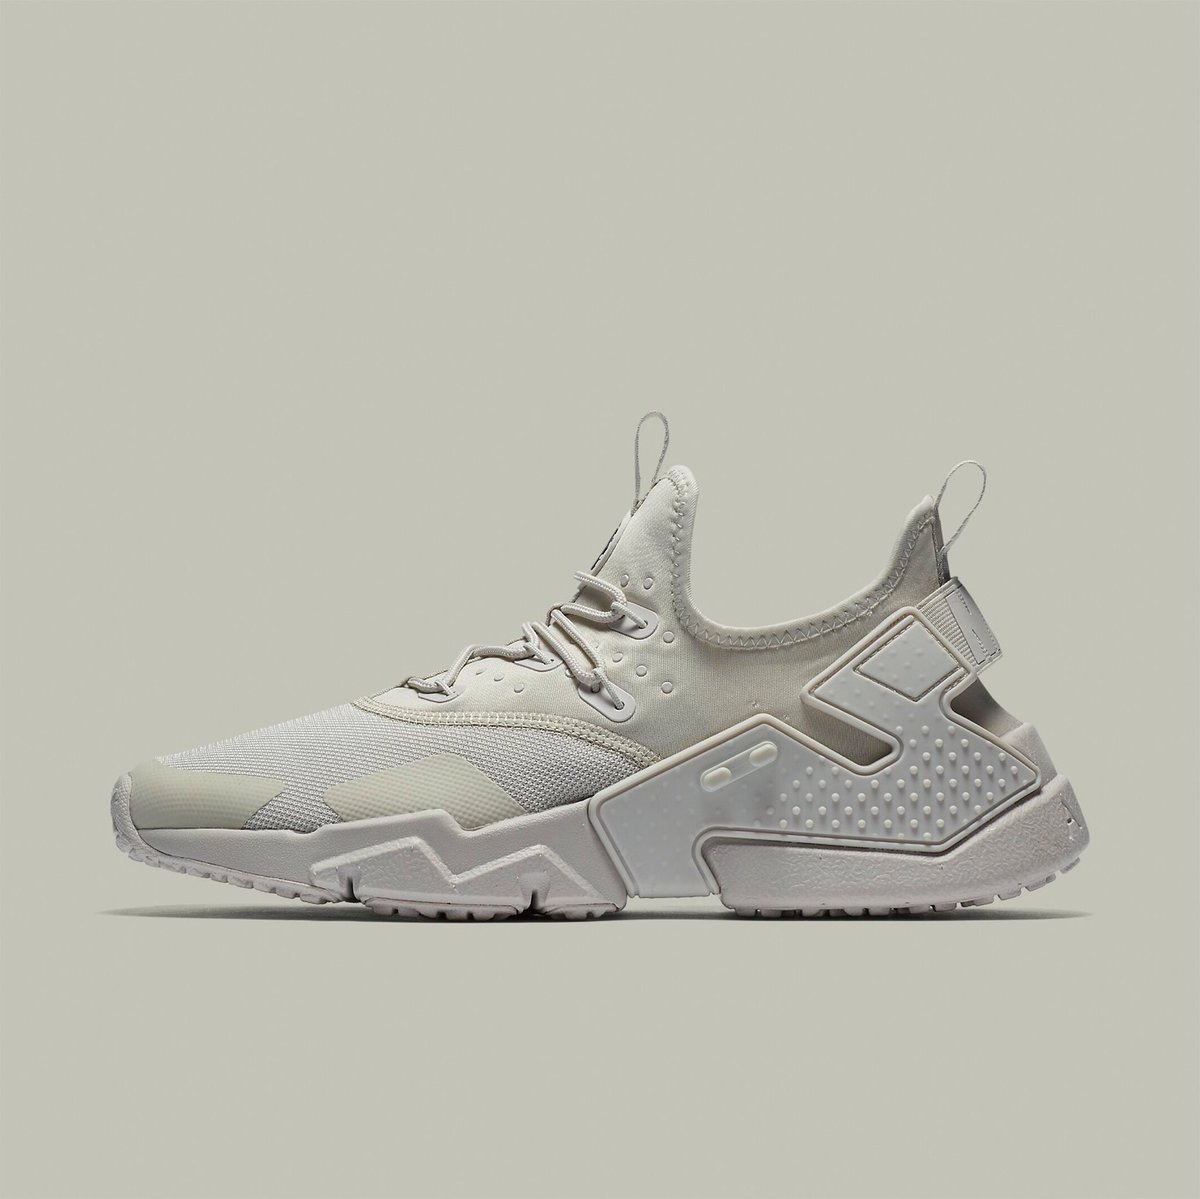 cce059667b803 ... uk champs sports on twitter new take on a classic nike huarache drift  is now in